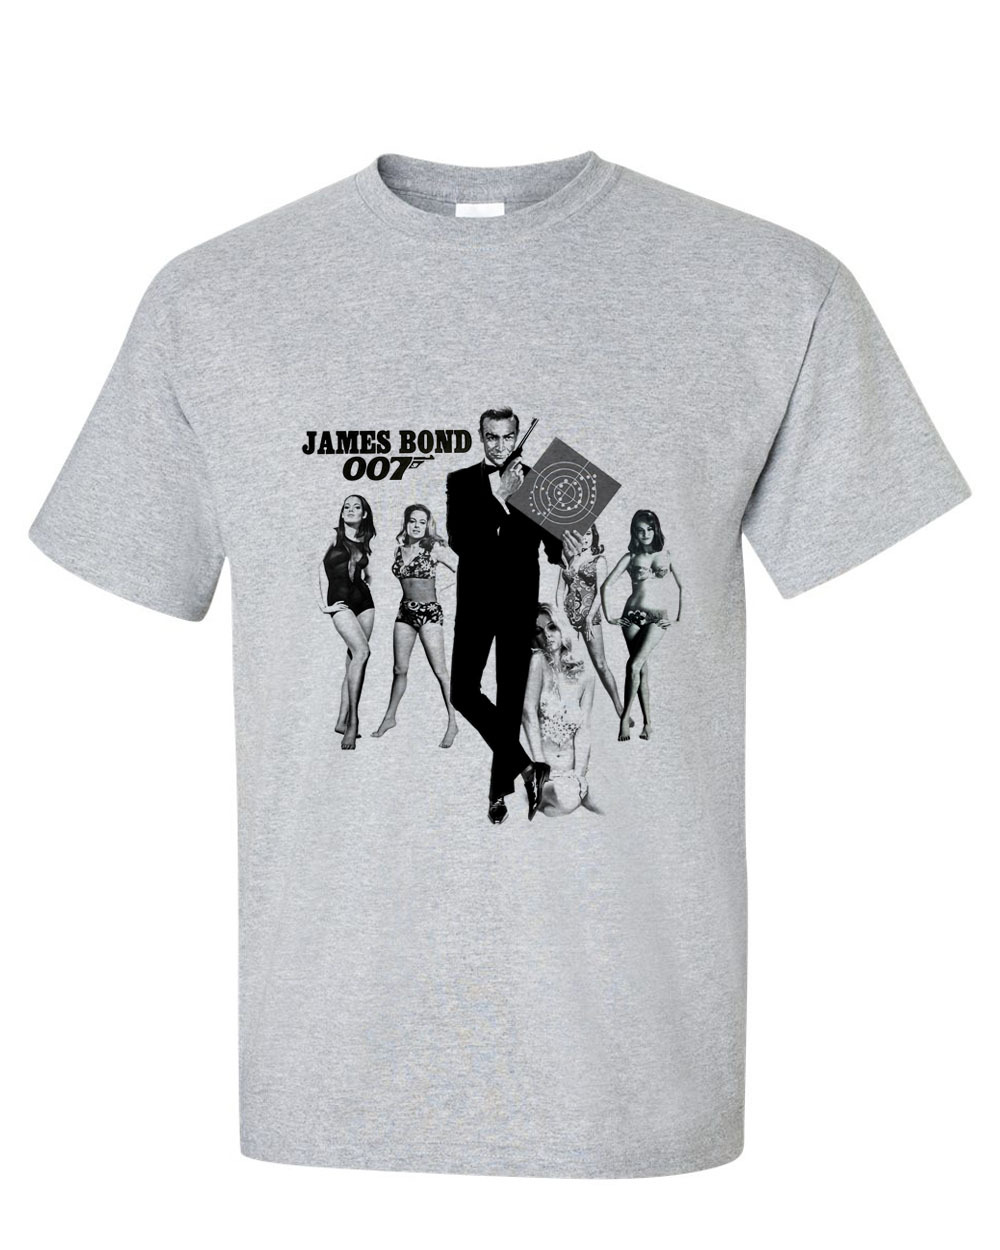 0625e7898 James bond 007 sean connery t shirt retro vintage action movie tee for sale  online store. 1 of 3